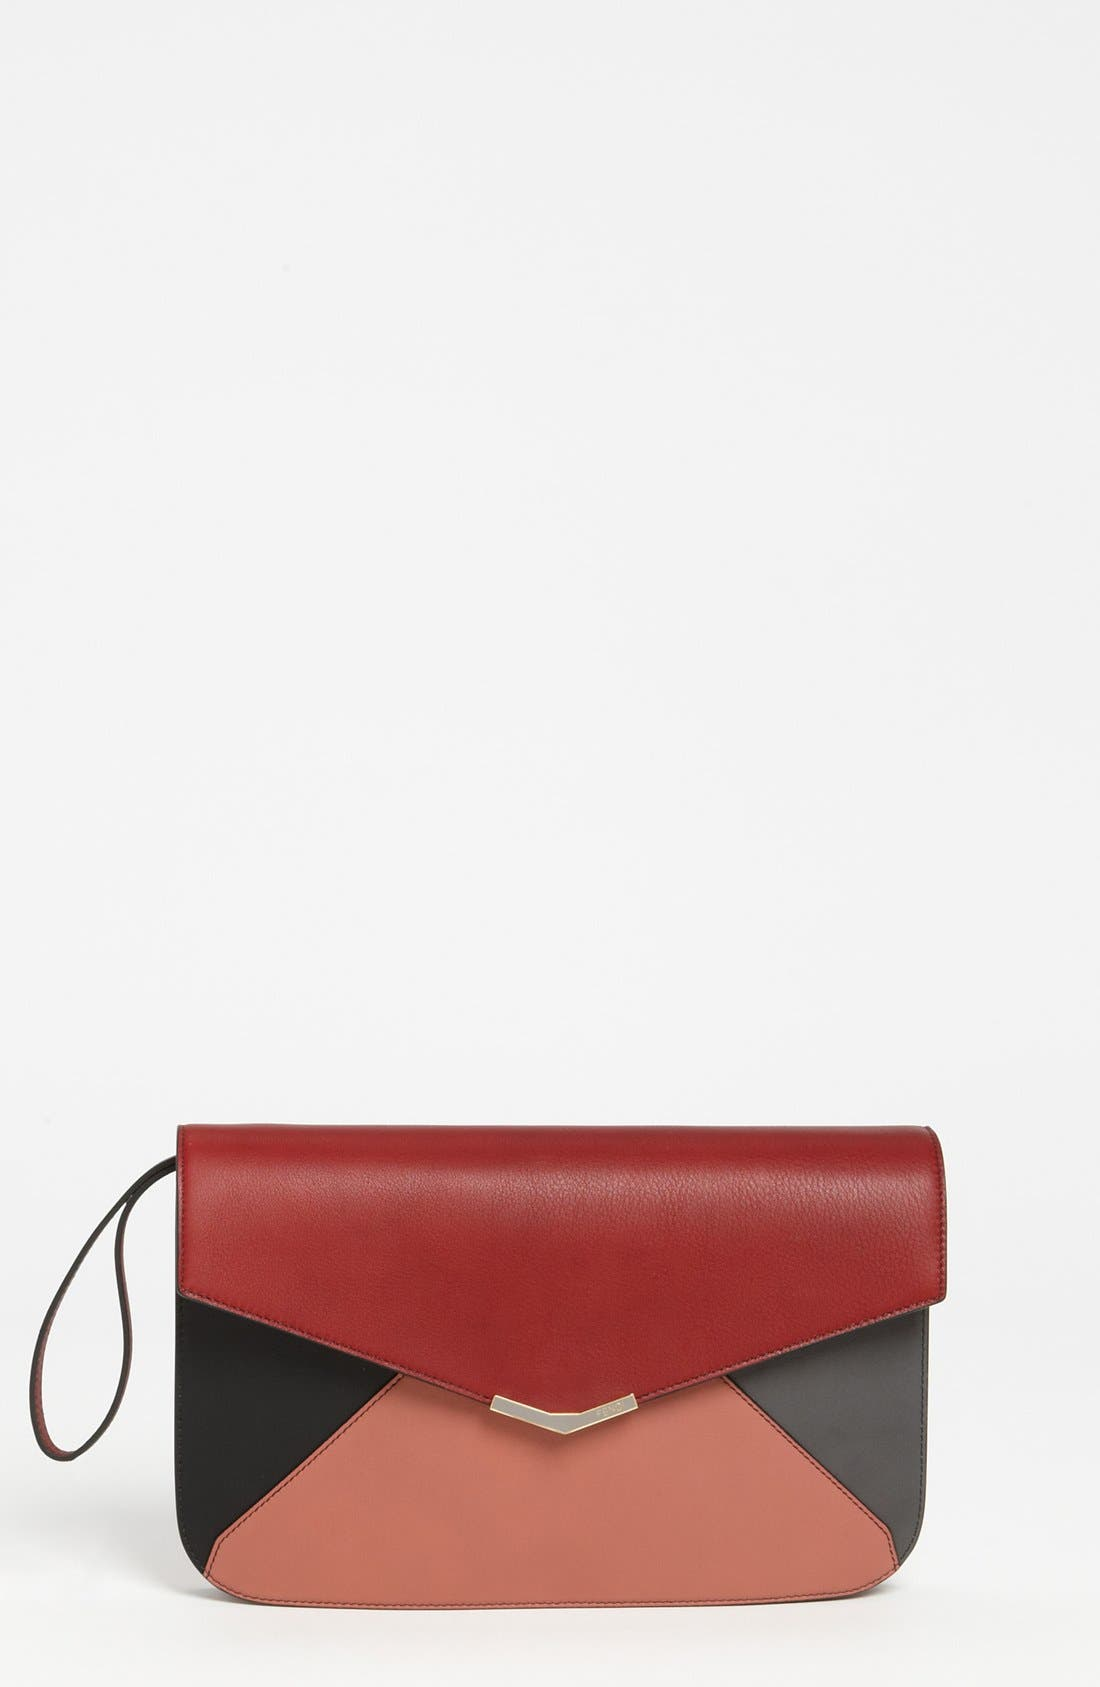 Main Image - Fendi '2Jours Colorblock' Leather Clutch